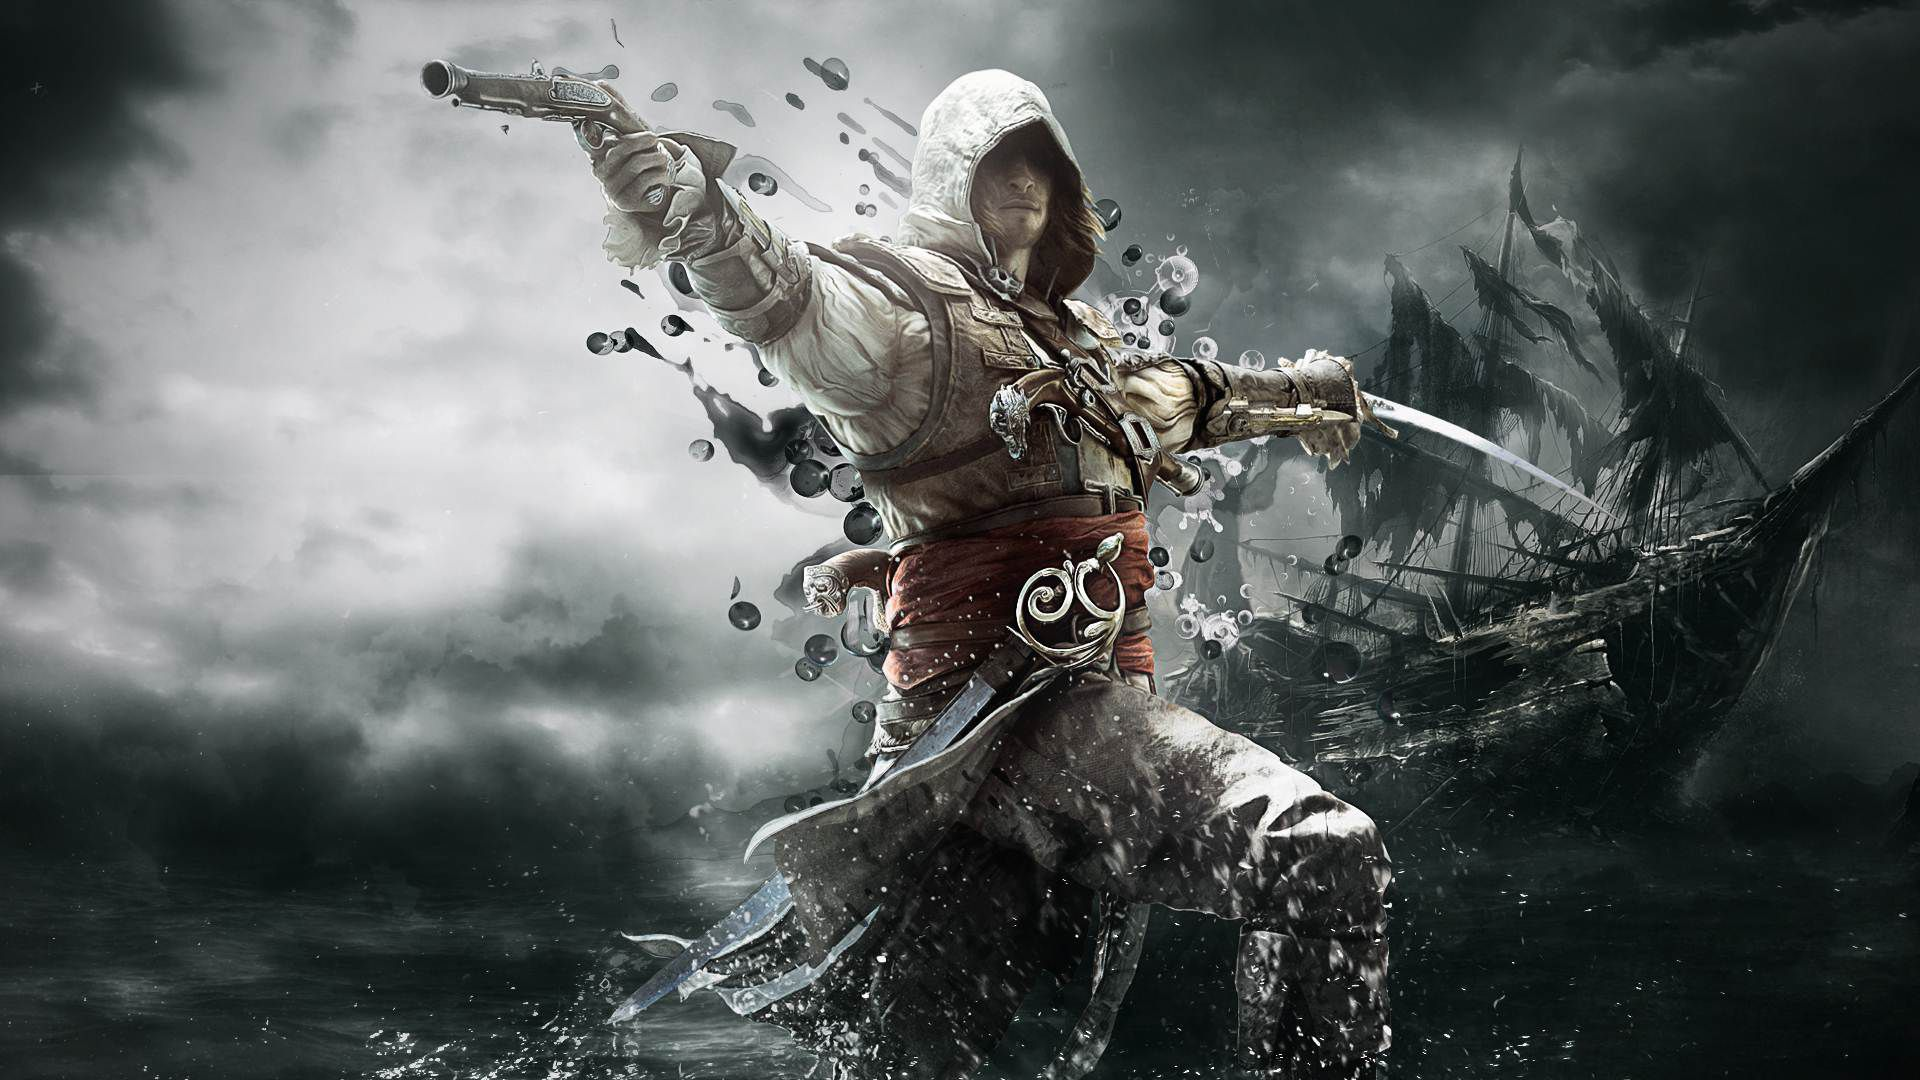 Assassin's Creed 4 900p vs. 1090p im Video